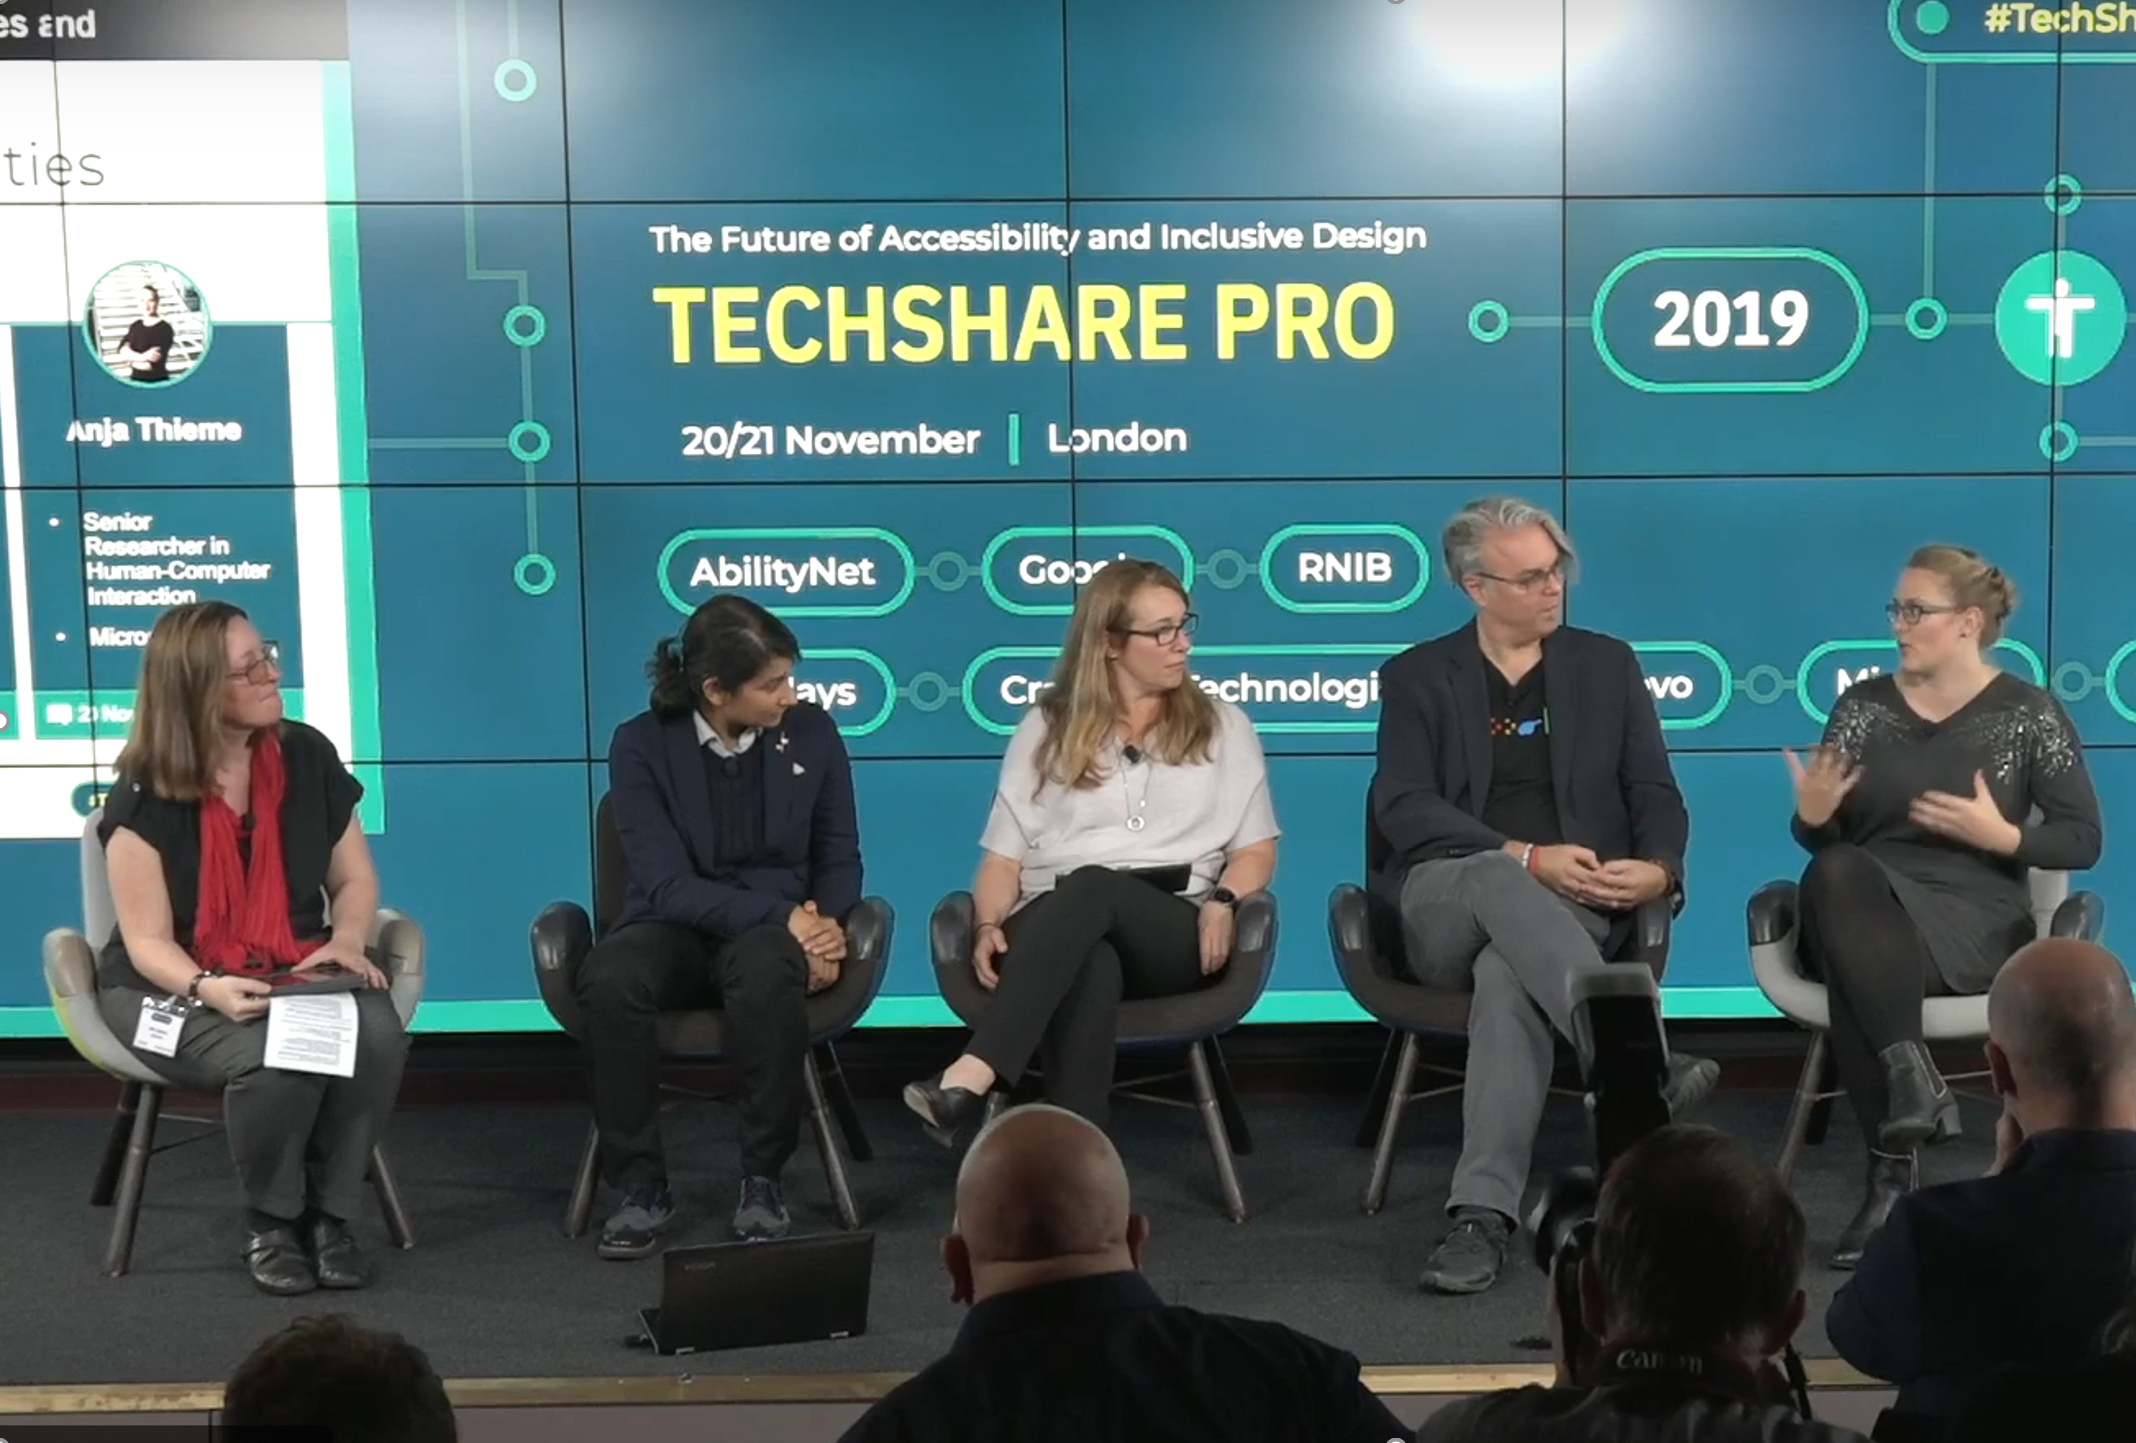 Image showing all the techshare panelists next to each other sitting on the conference stage